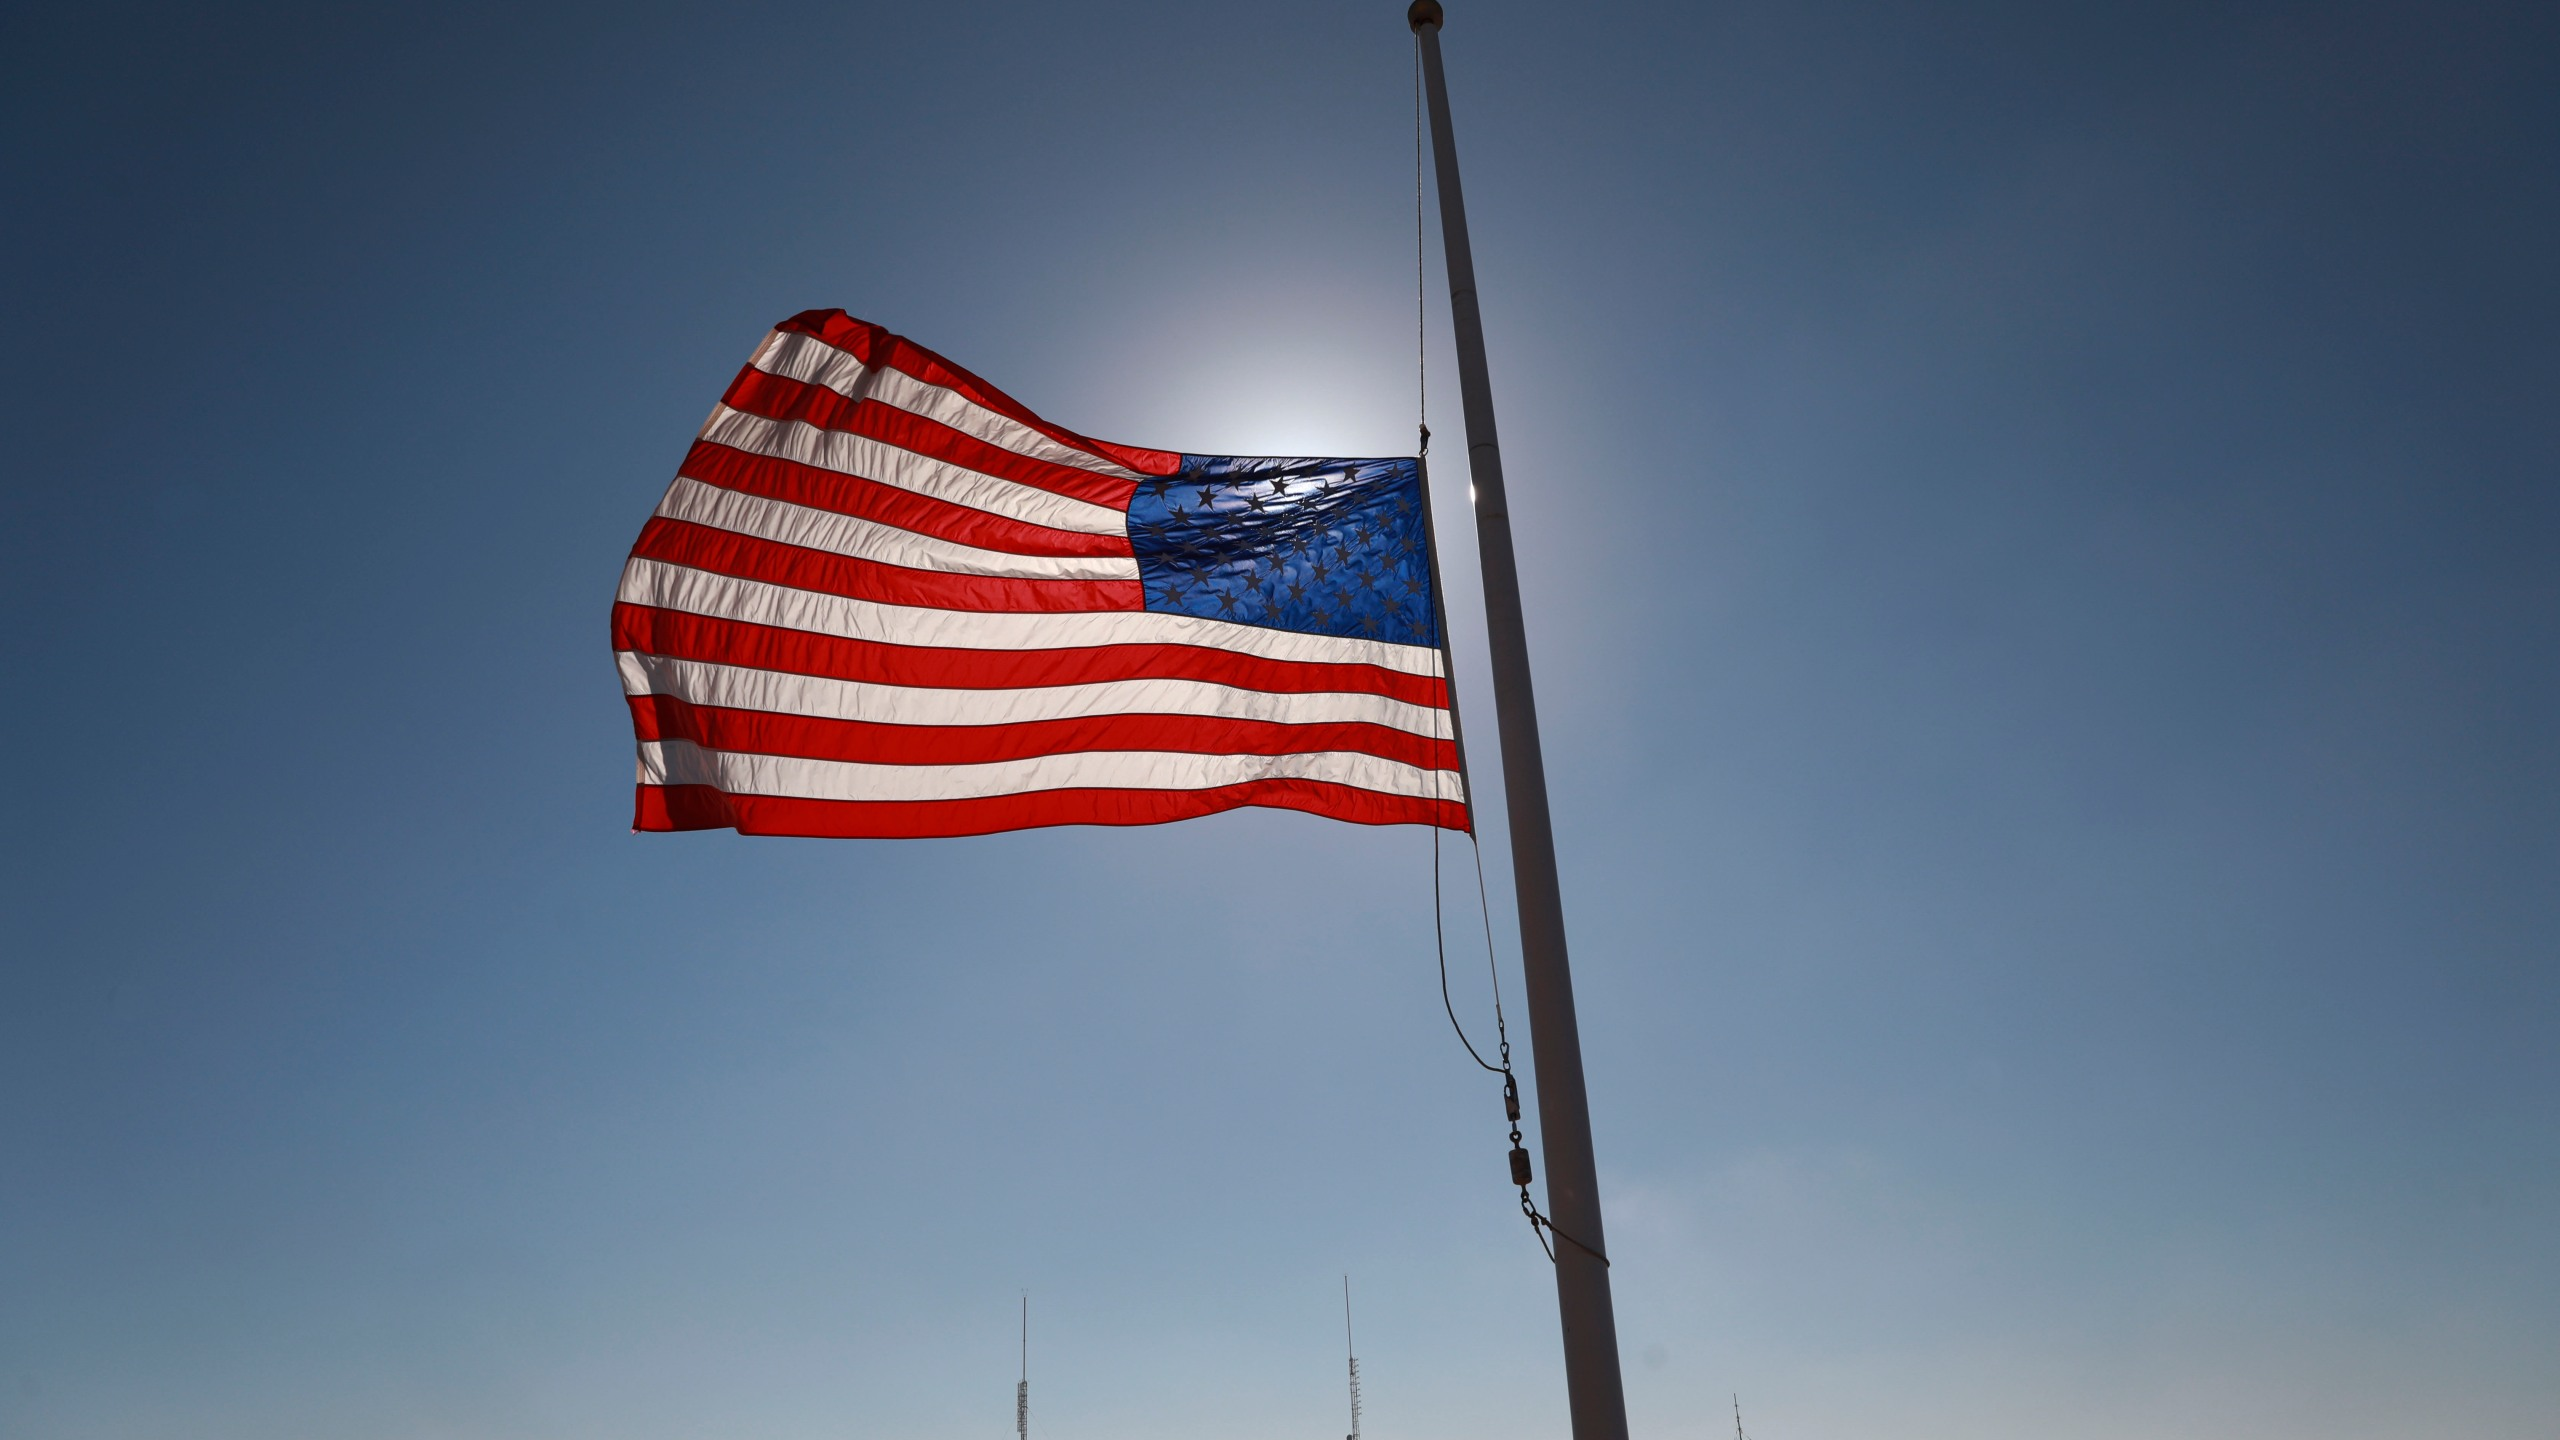 Flags Ordered To Fly At Half Staff After Kabul Terror Attack